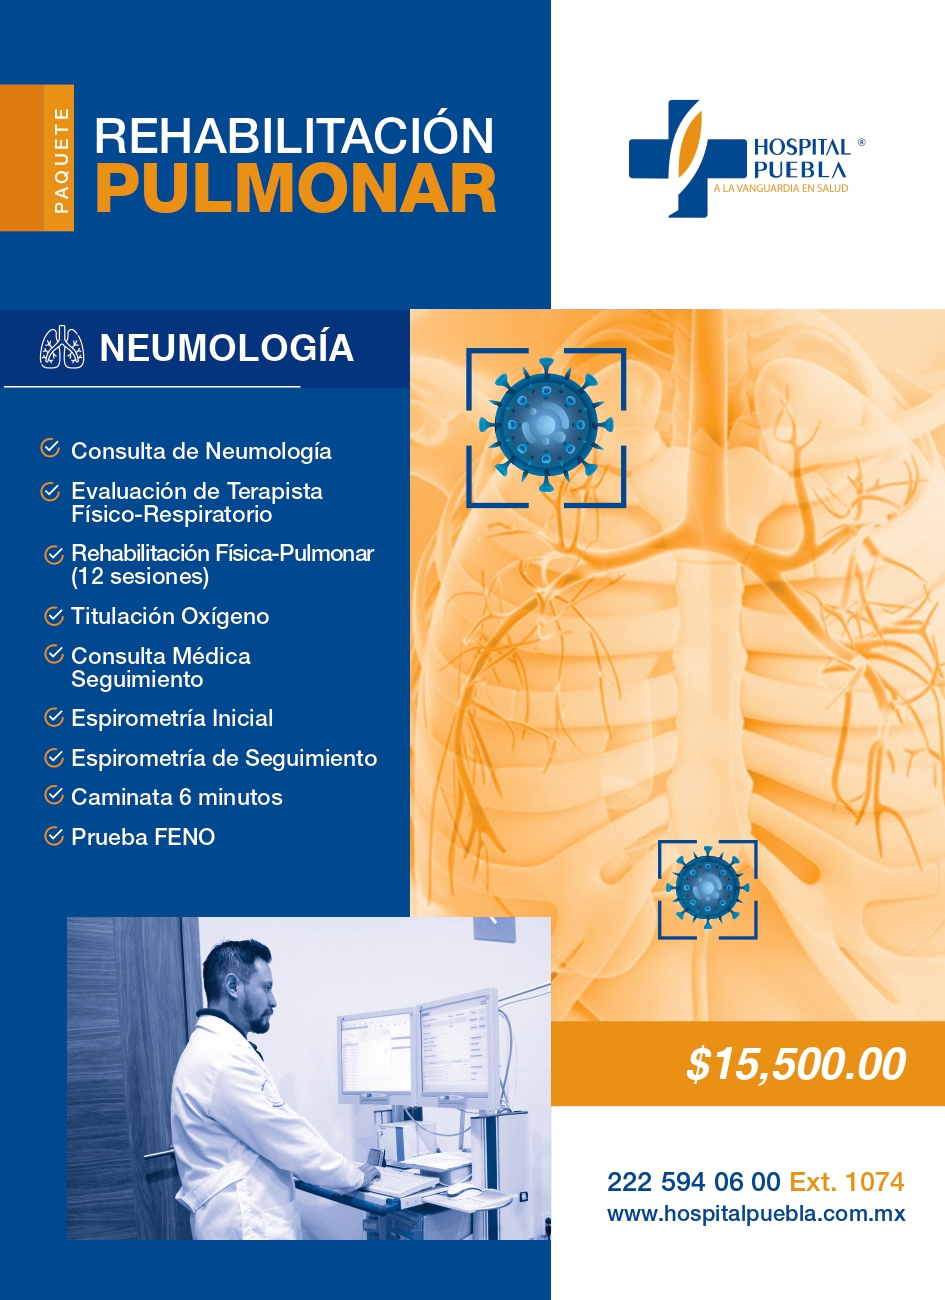 Check up covid rehabilitaciòn pulmonar